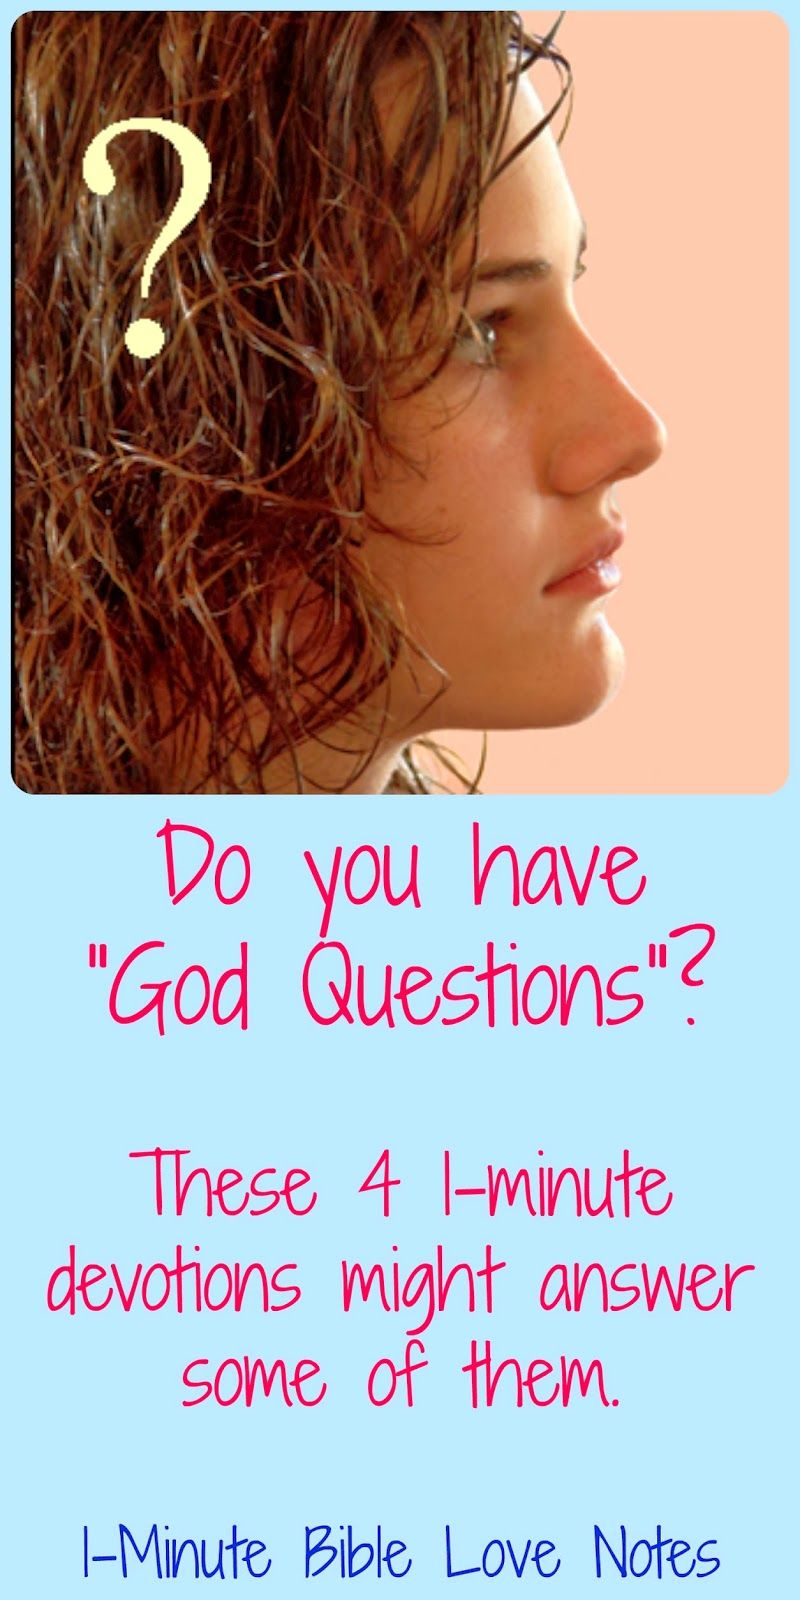 """Four 1-Minute Bible Love Notes addressing """"God Questions"""": 1. Mystery is Part of Faith--Being comfortable with some unanswered questions 2.Why Do We Care About suffering?--Understanding that God gave us our concerns 3.Why is there Senseless Suffering?--God gives clues to this un-answerable question 4. What Did They Do To Deserve This?--being careful not to judge others when calamity hits. 4. If I Were God--Our unrealistic view that we could do things better than God."""